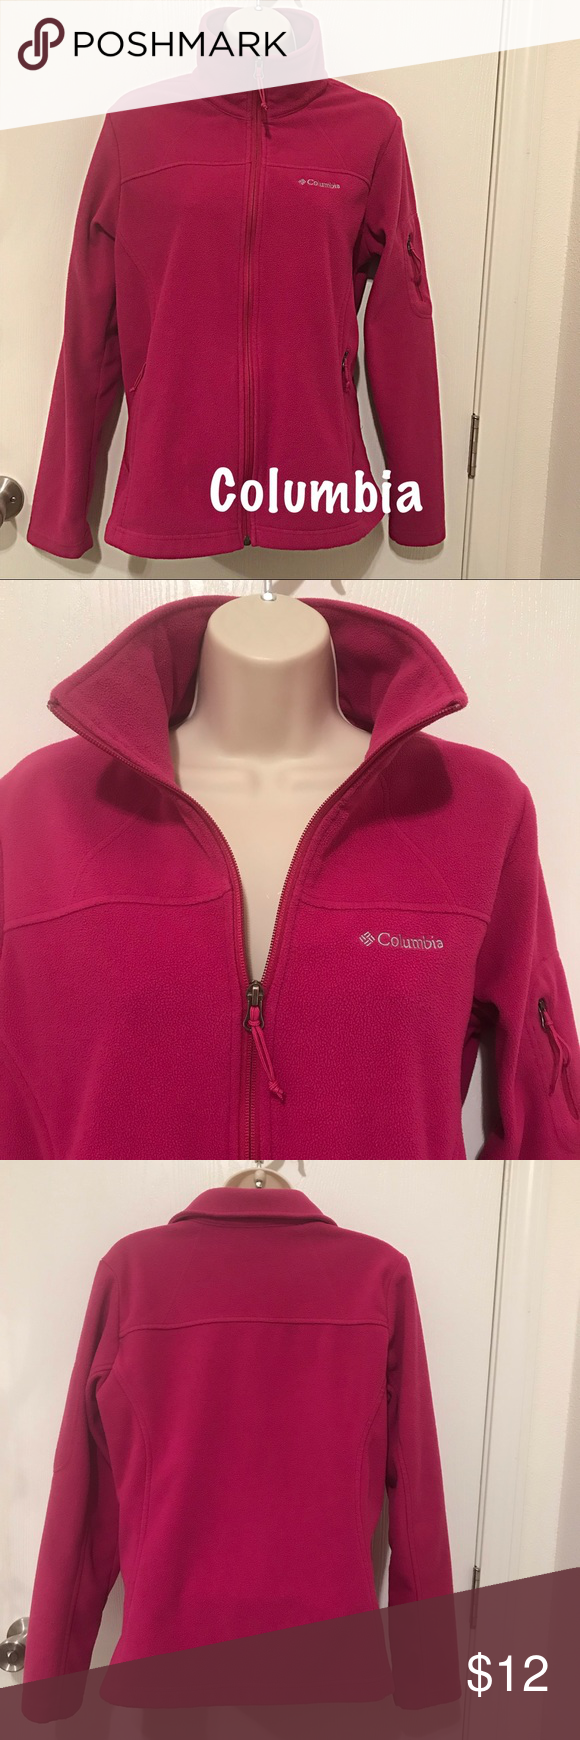 af2103aded5f Women s Columbia Jacket Raspberry